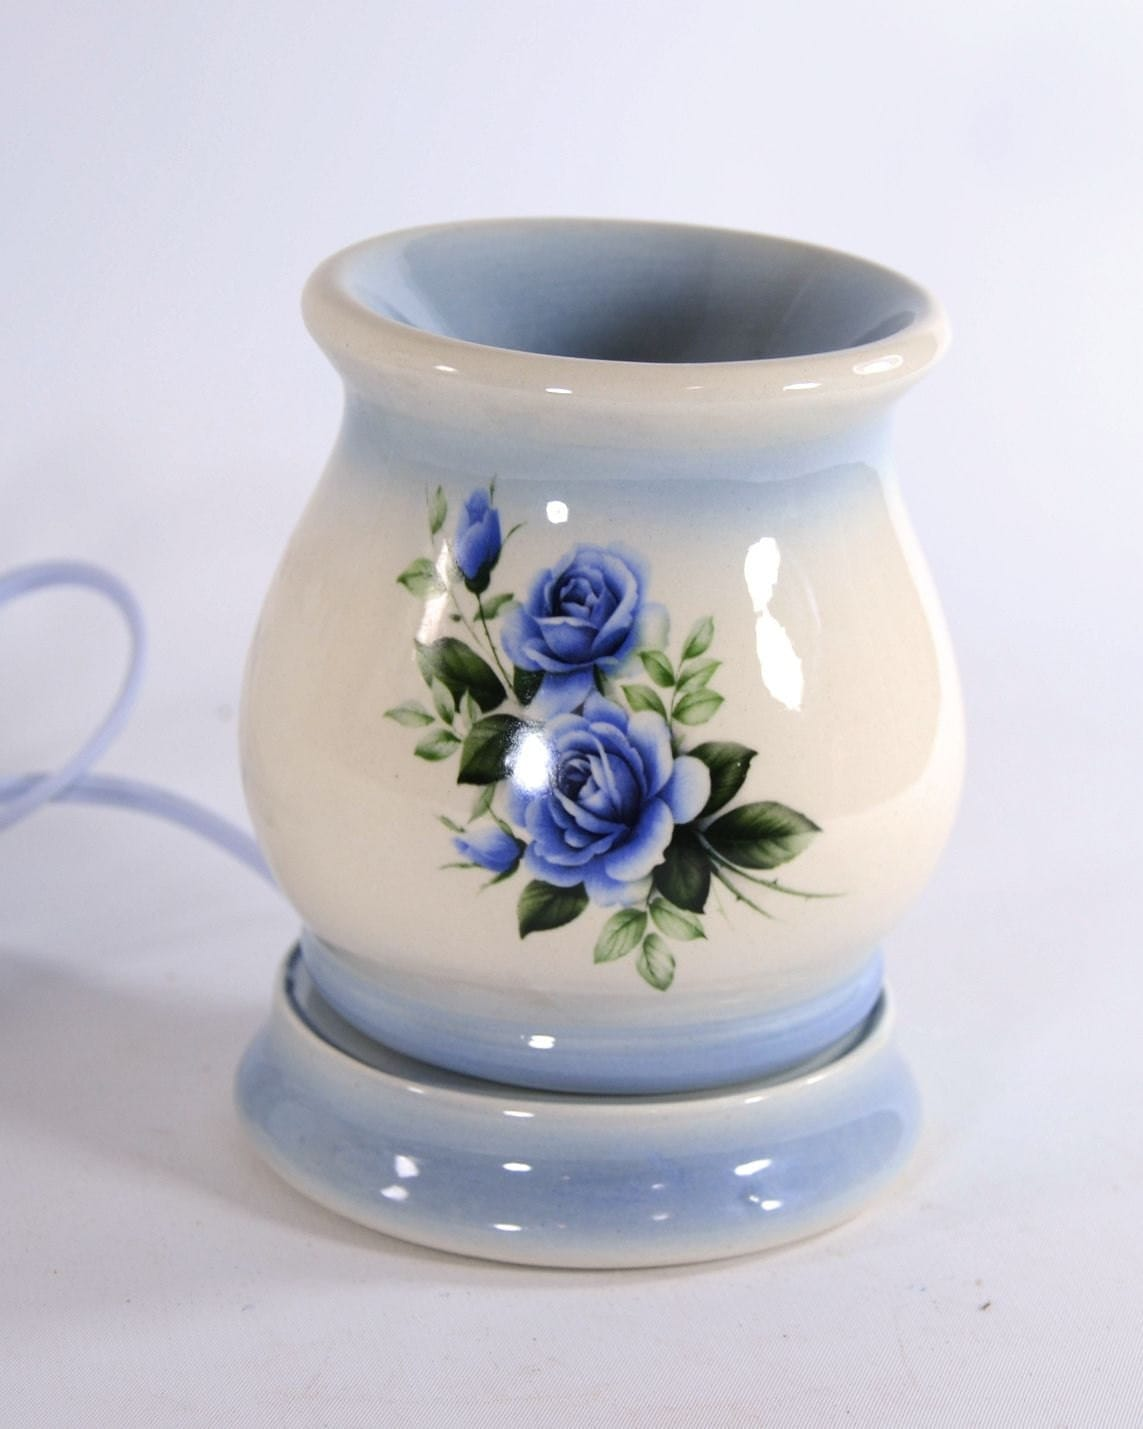 Electric Tart Burners ~ Electric tart warmer wax melt oil burner blue rose mother